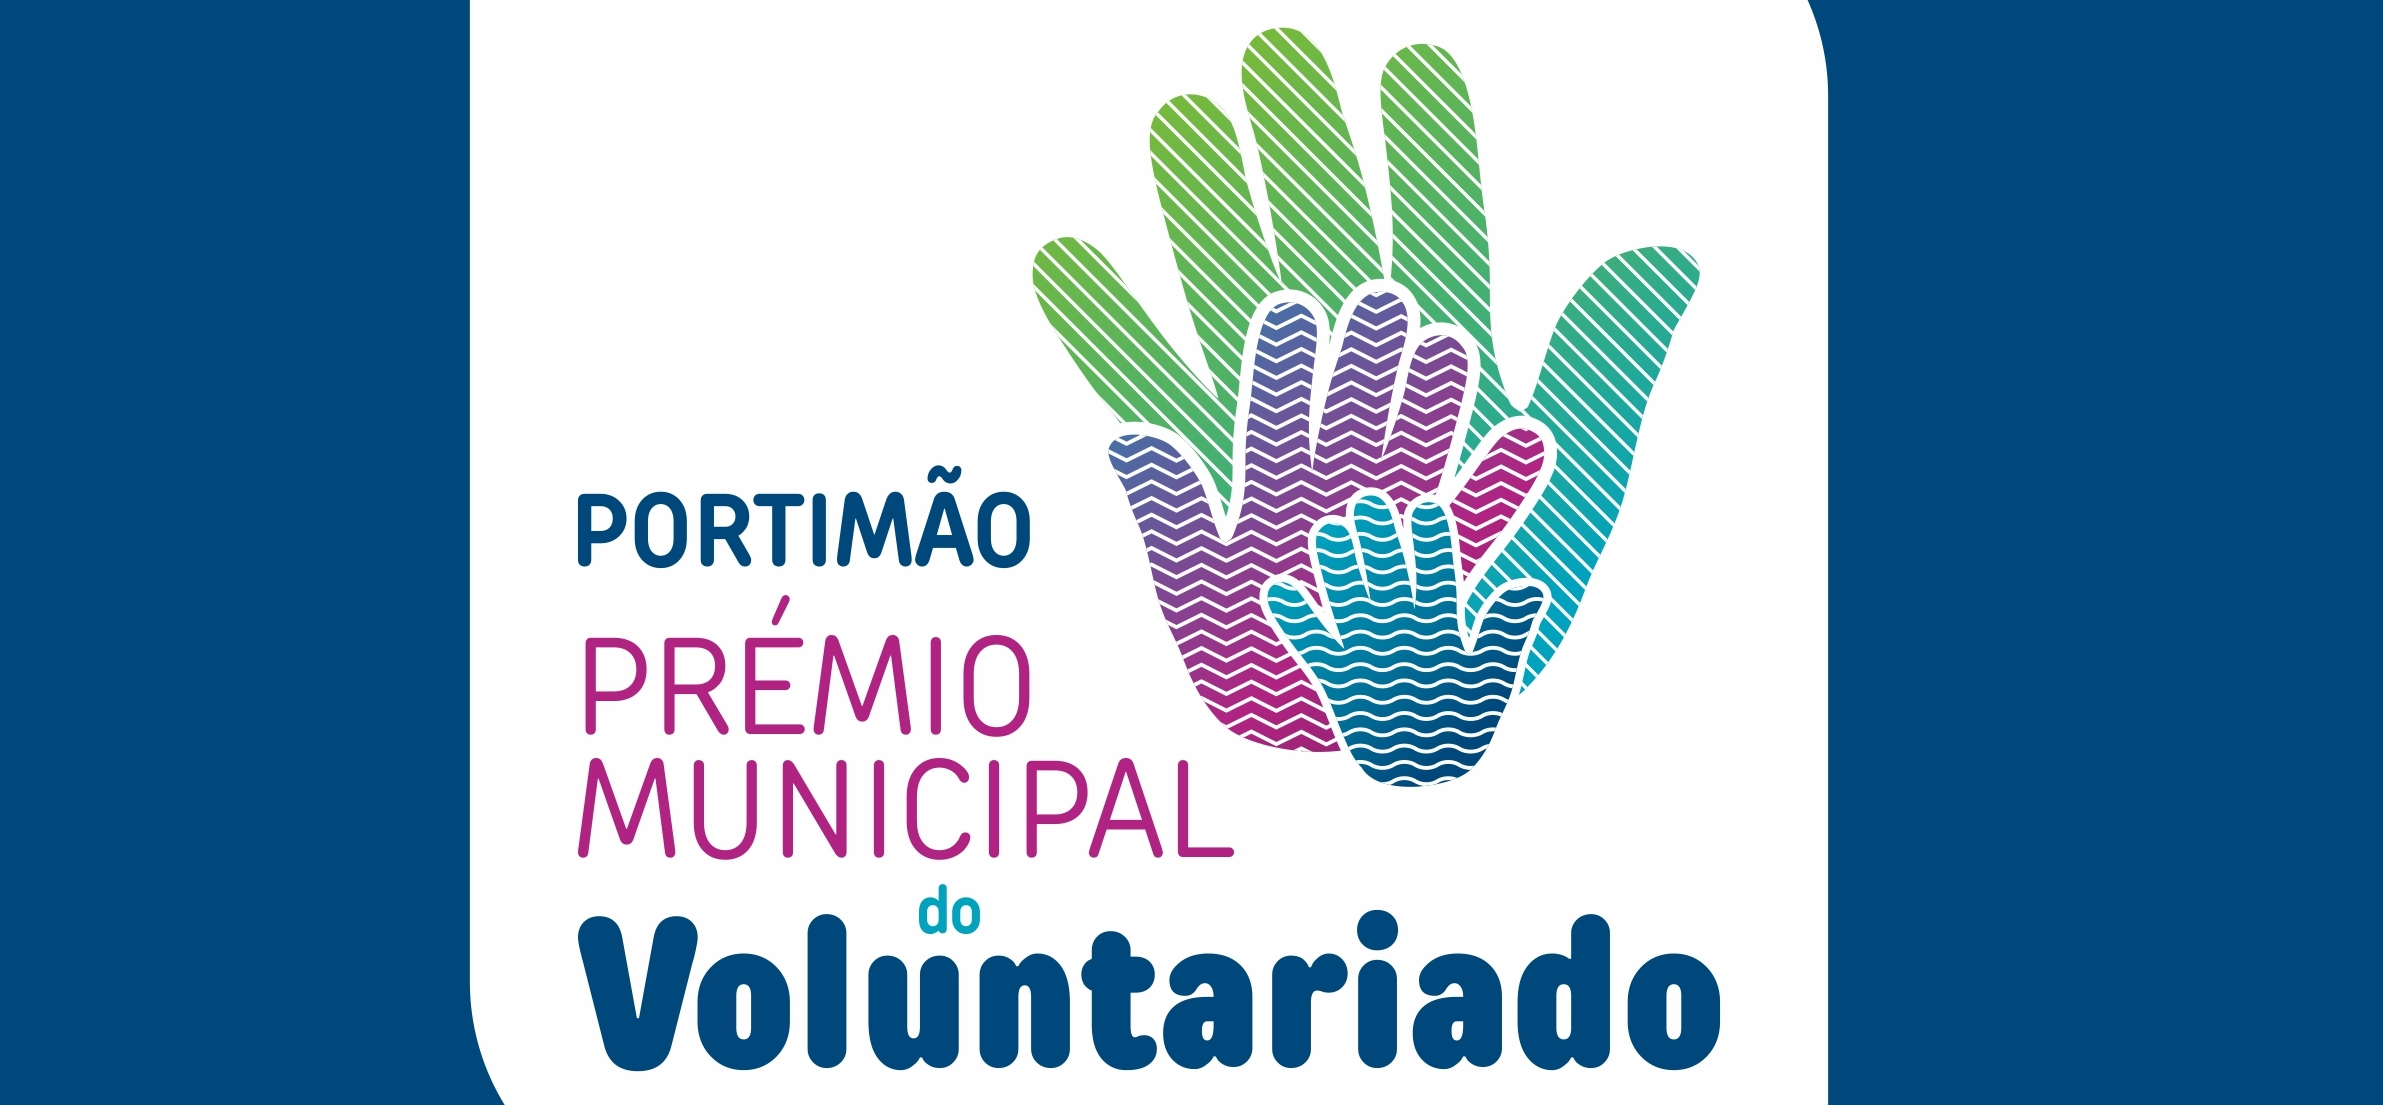 Portimão lança  Prémio Municipal do Voluntariado